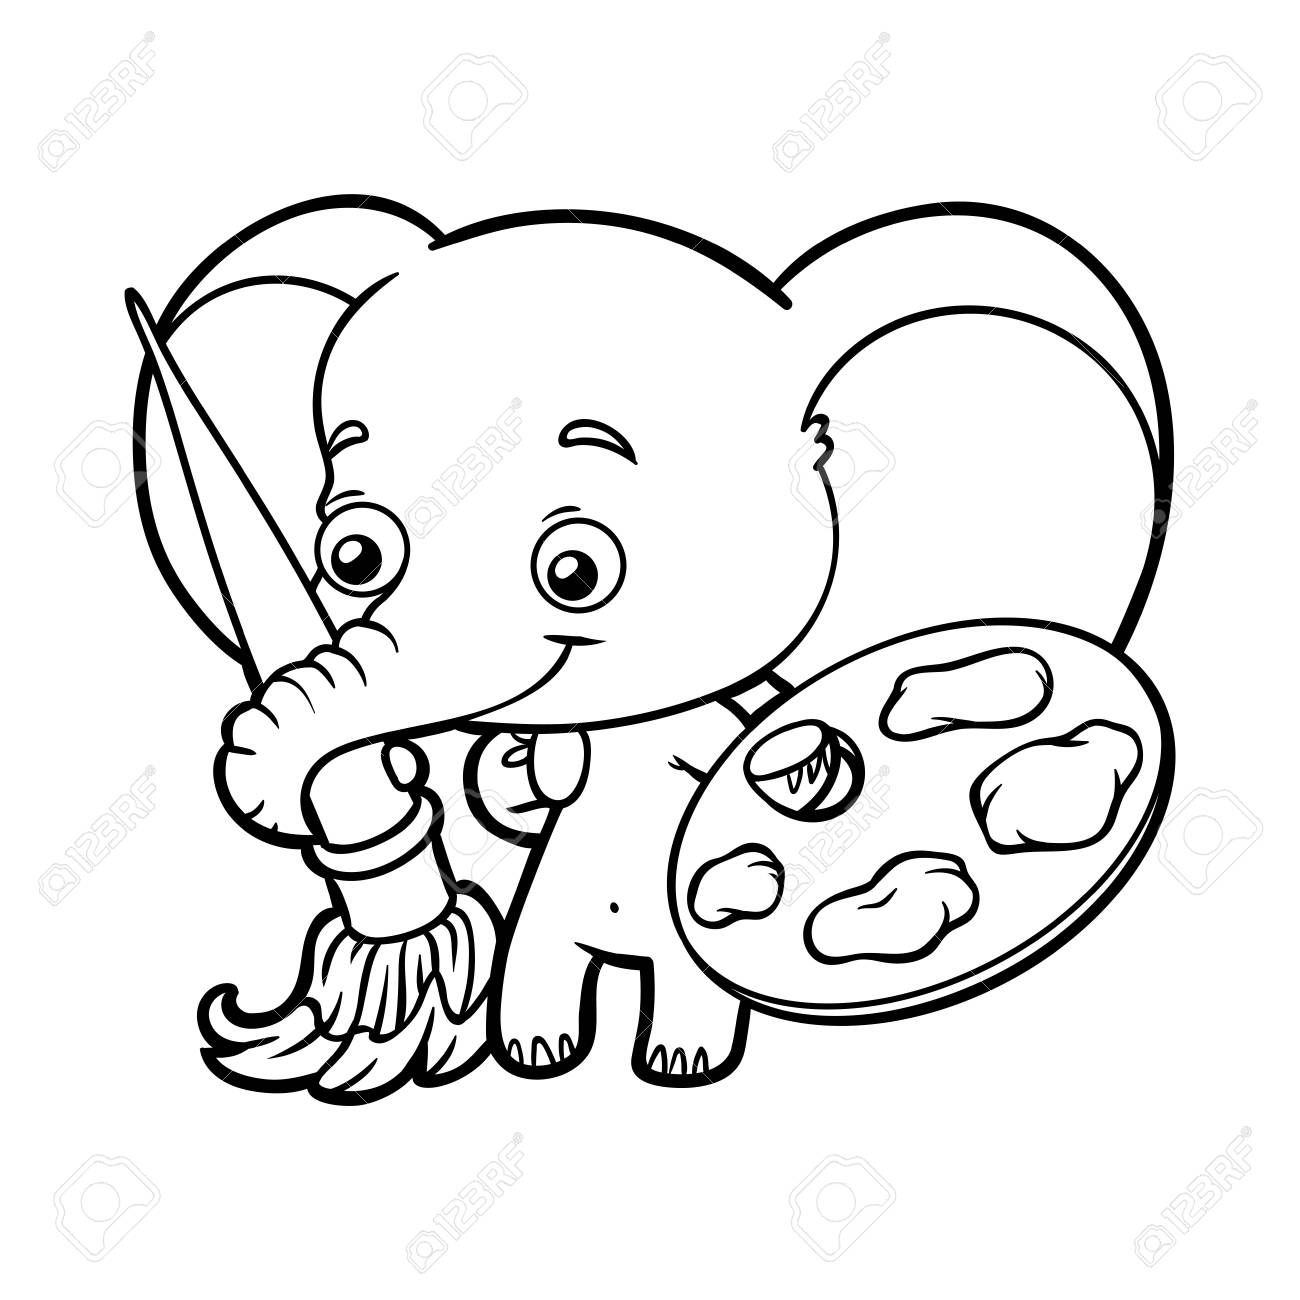 Coloring Book For Children, Elephant With Paints And A Brush Royalty ...